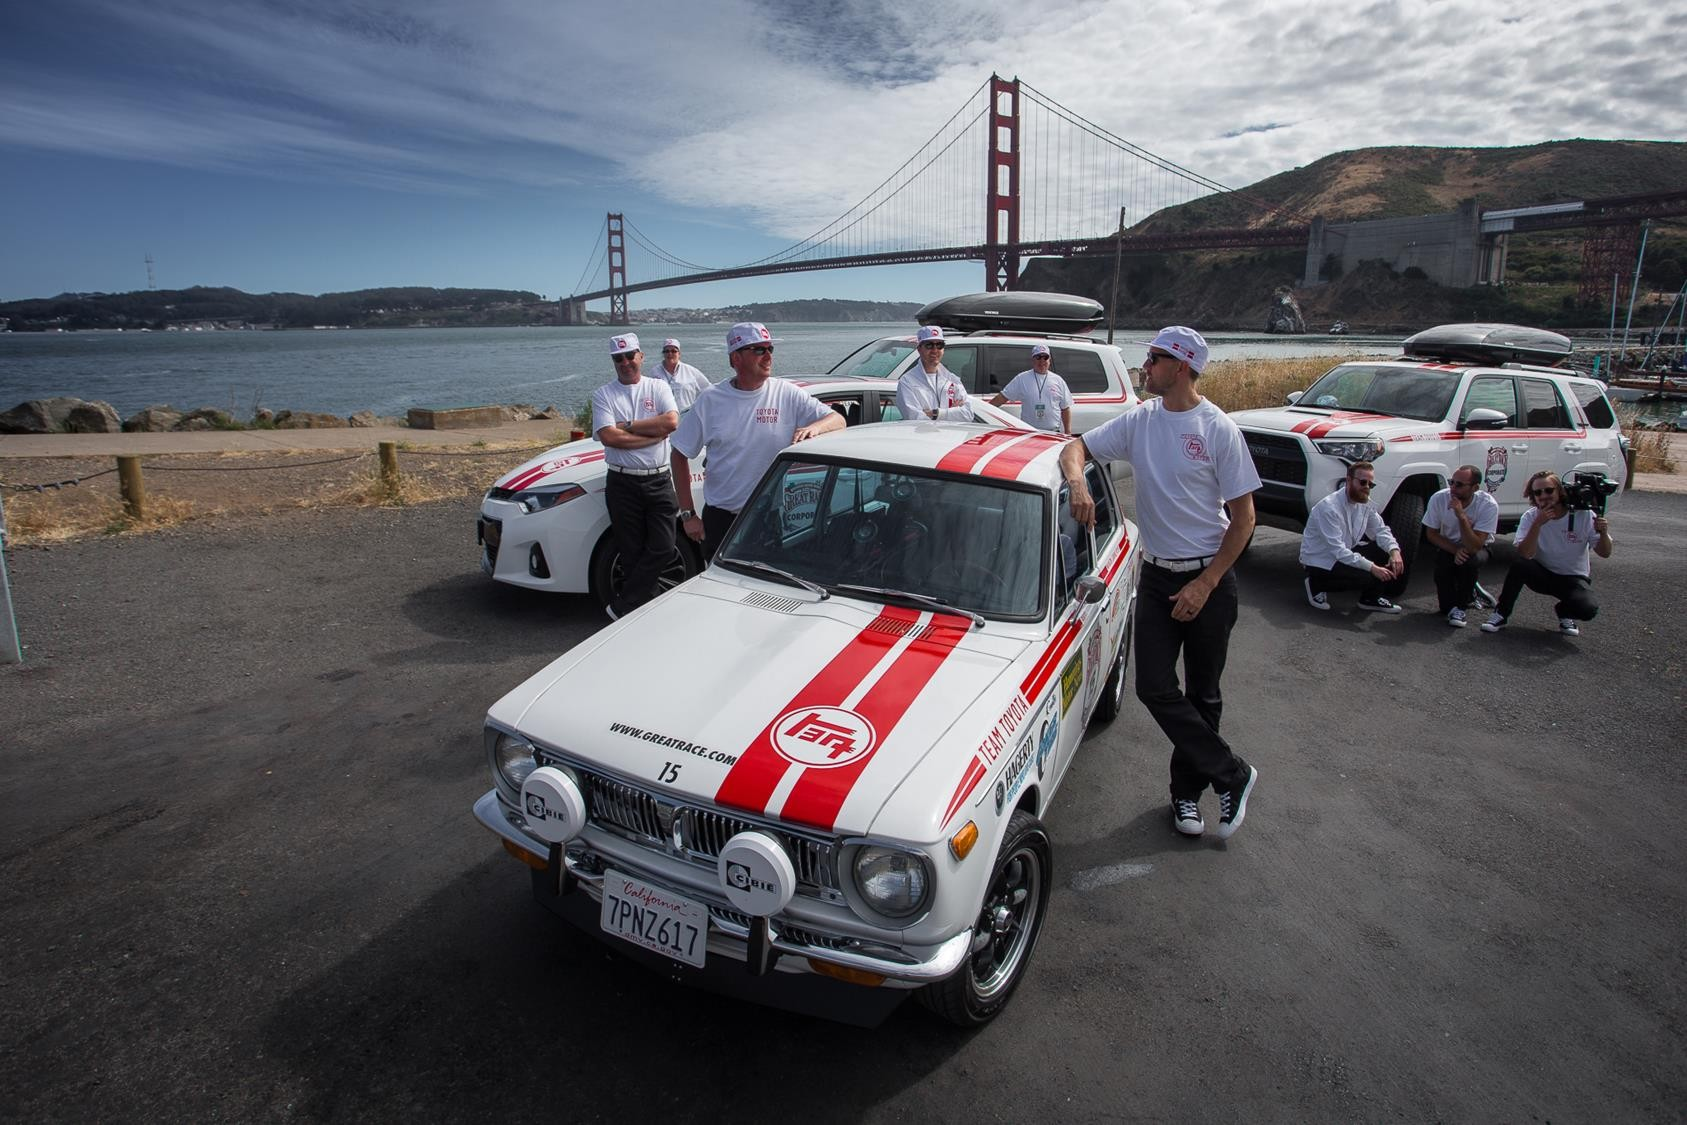 toyota-has-entered-vintage-endurance-competition-with-first-generation-corolla_3